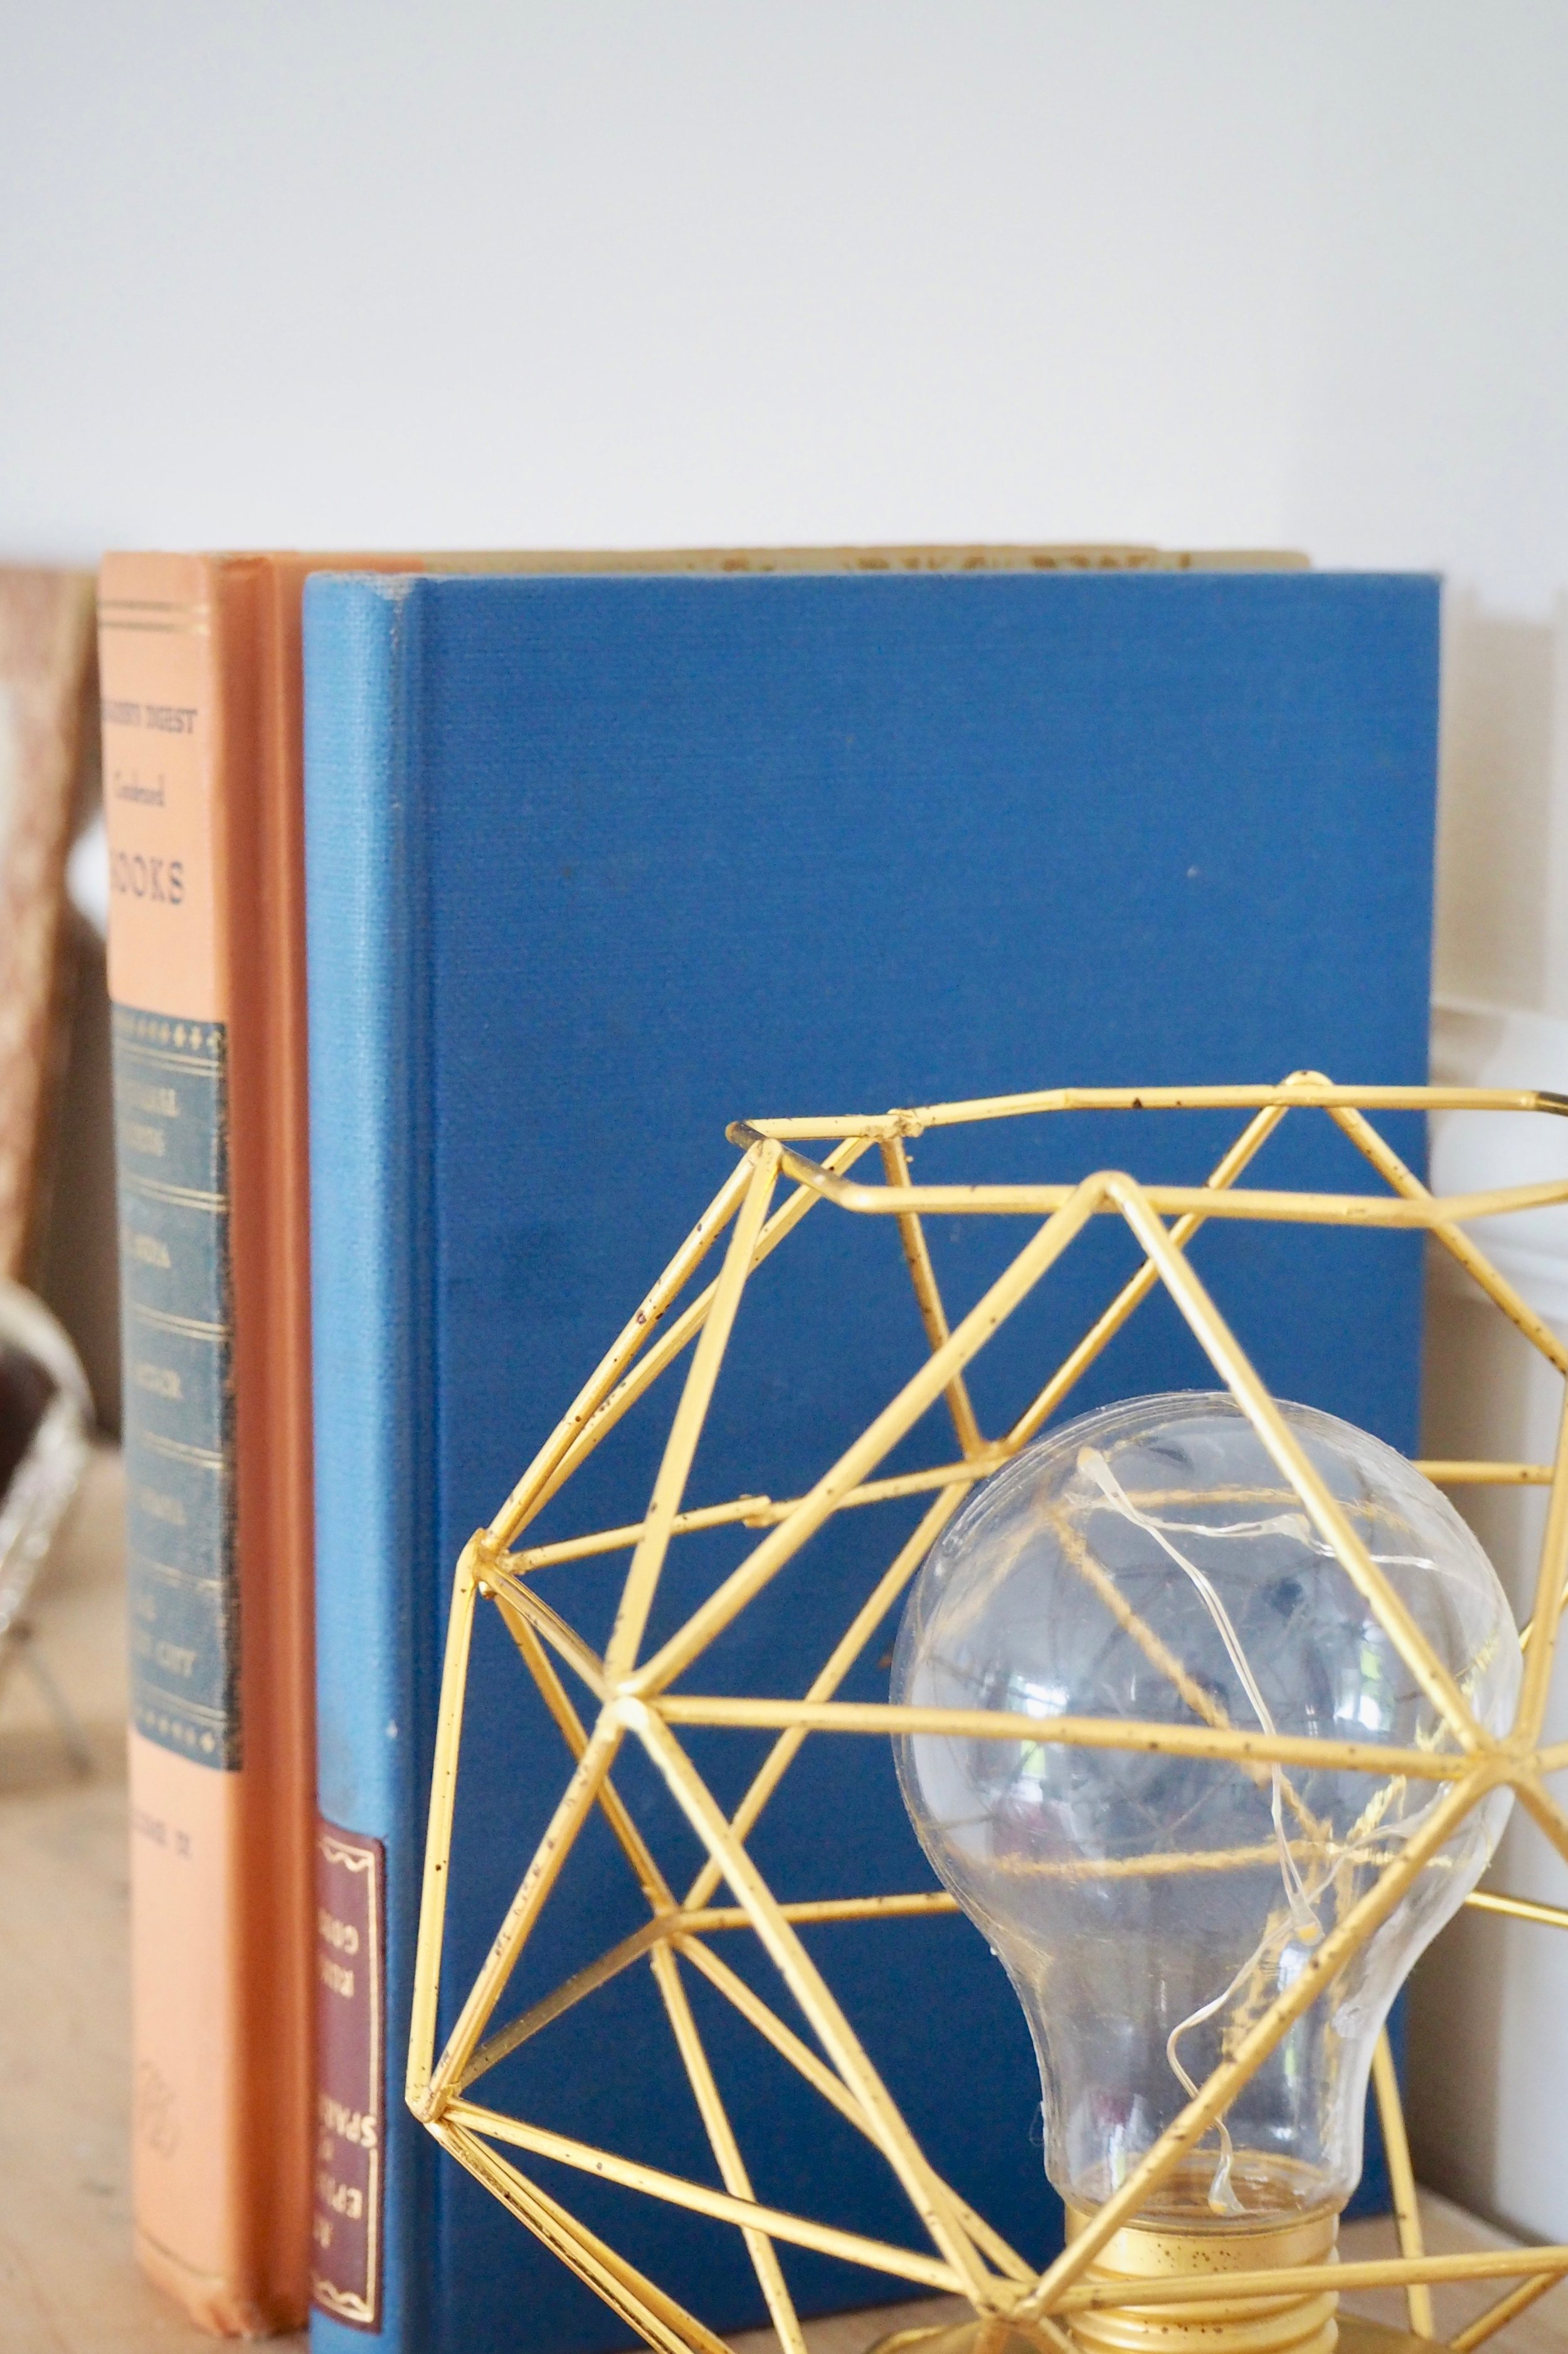 Eclectic objects for styling your mantelpiece by Camilla Pearl Blog.